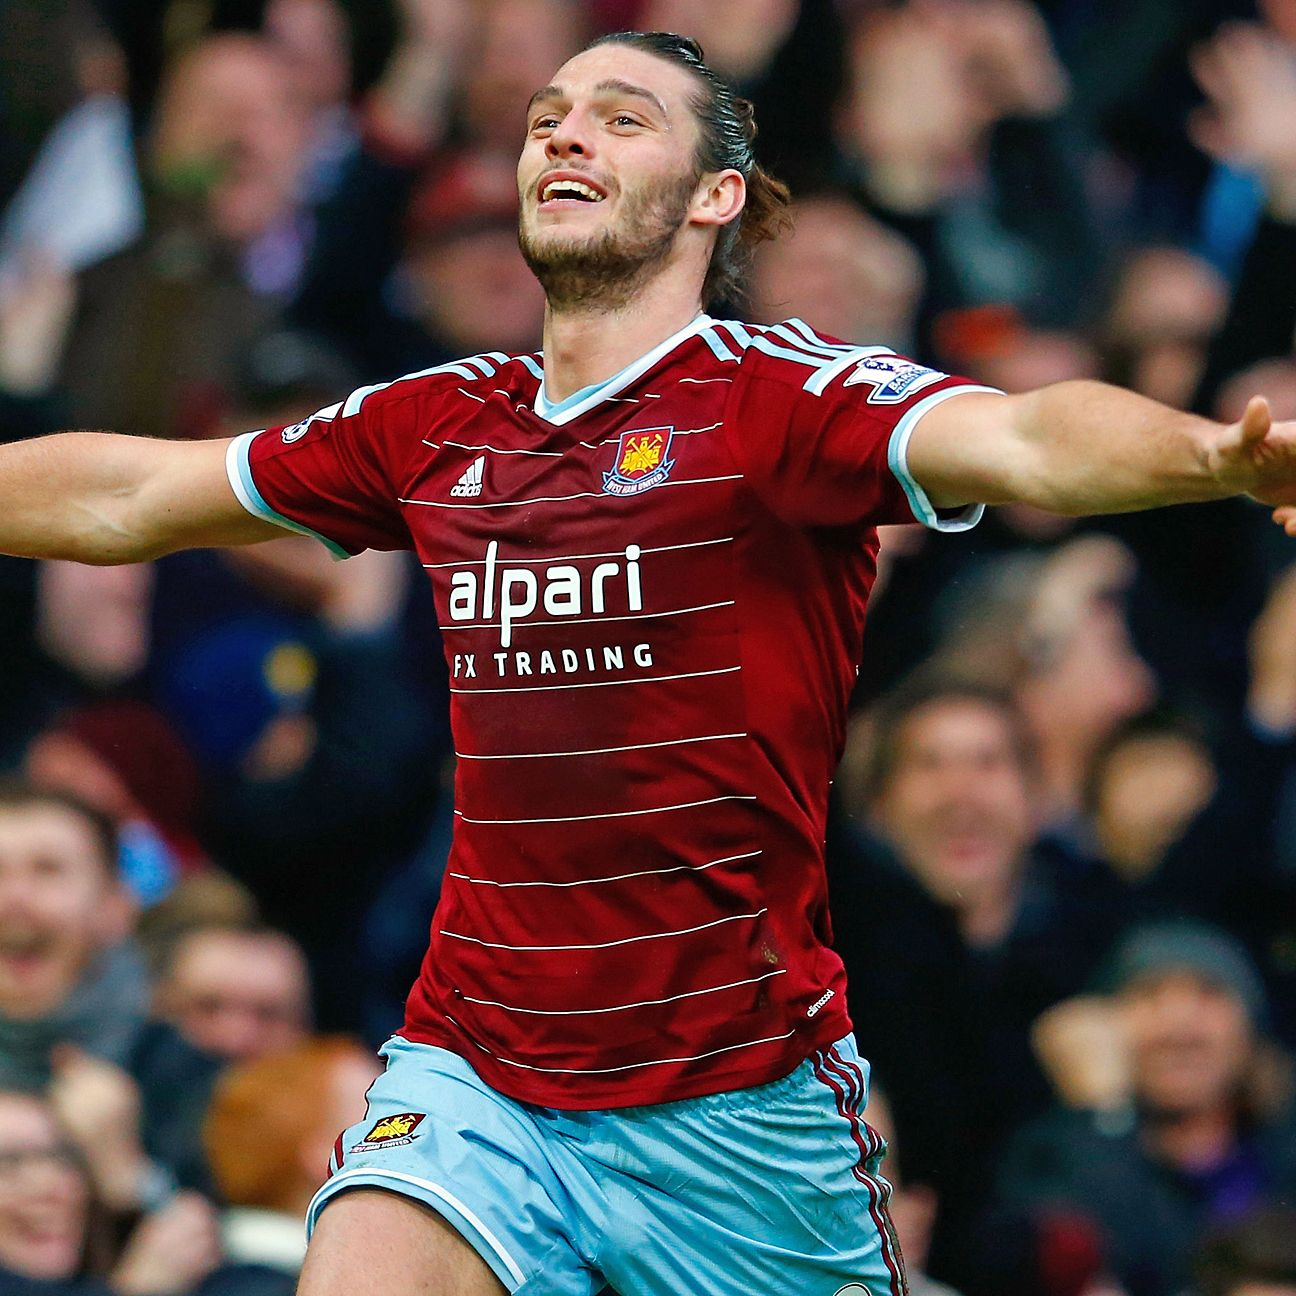 At age 25, West Ham striker Andy Carroll still has many good years ahead of him.